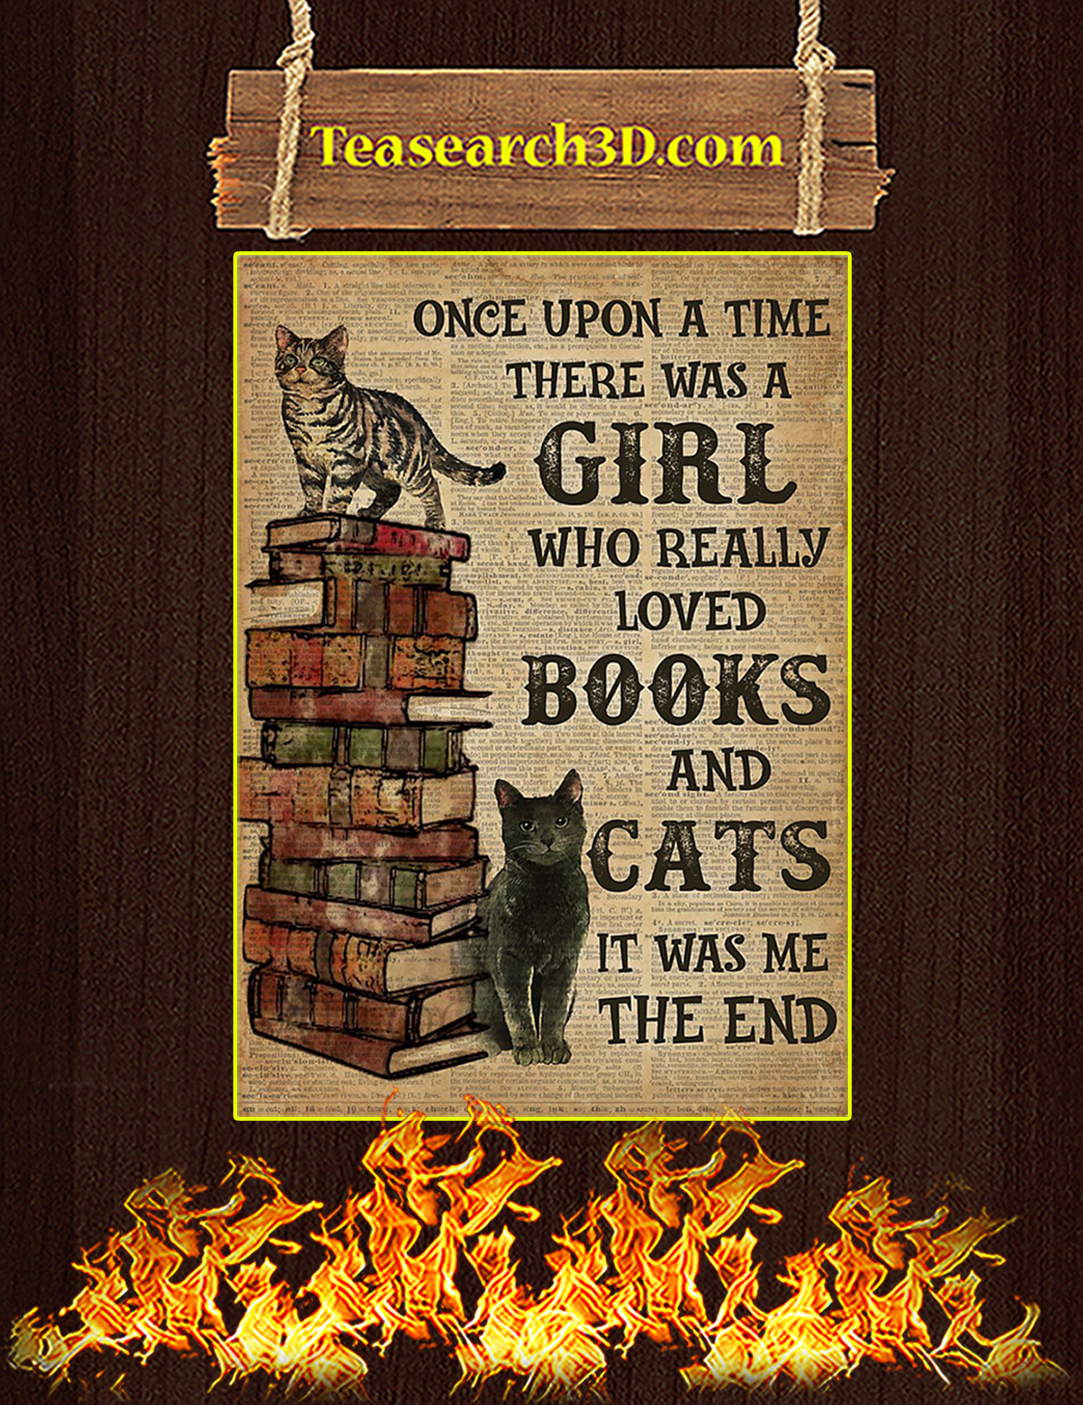 Once Upon A Time There Was A Girl Loved Boojs And Cats Poster A2